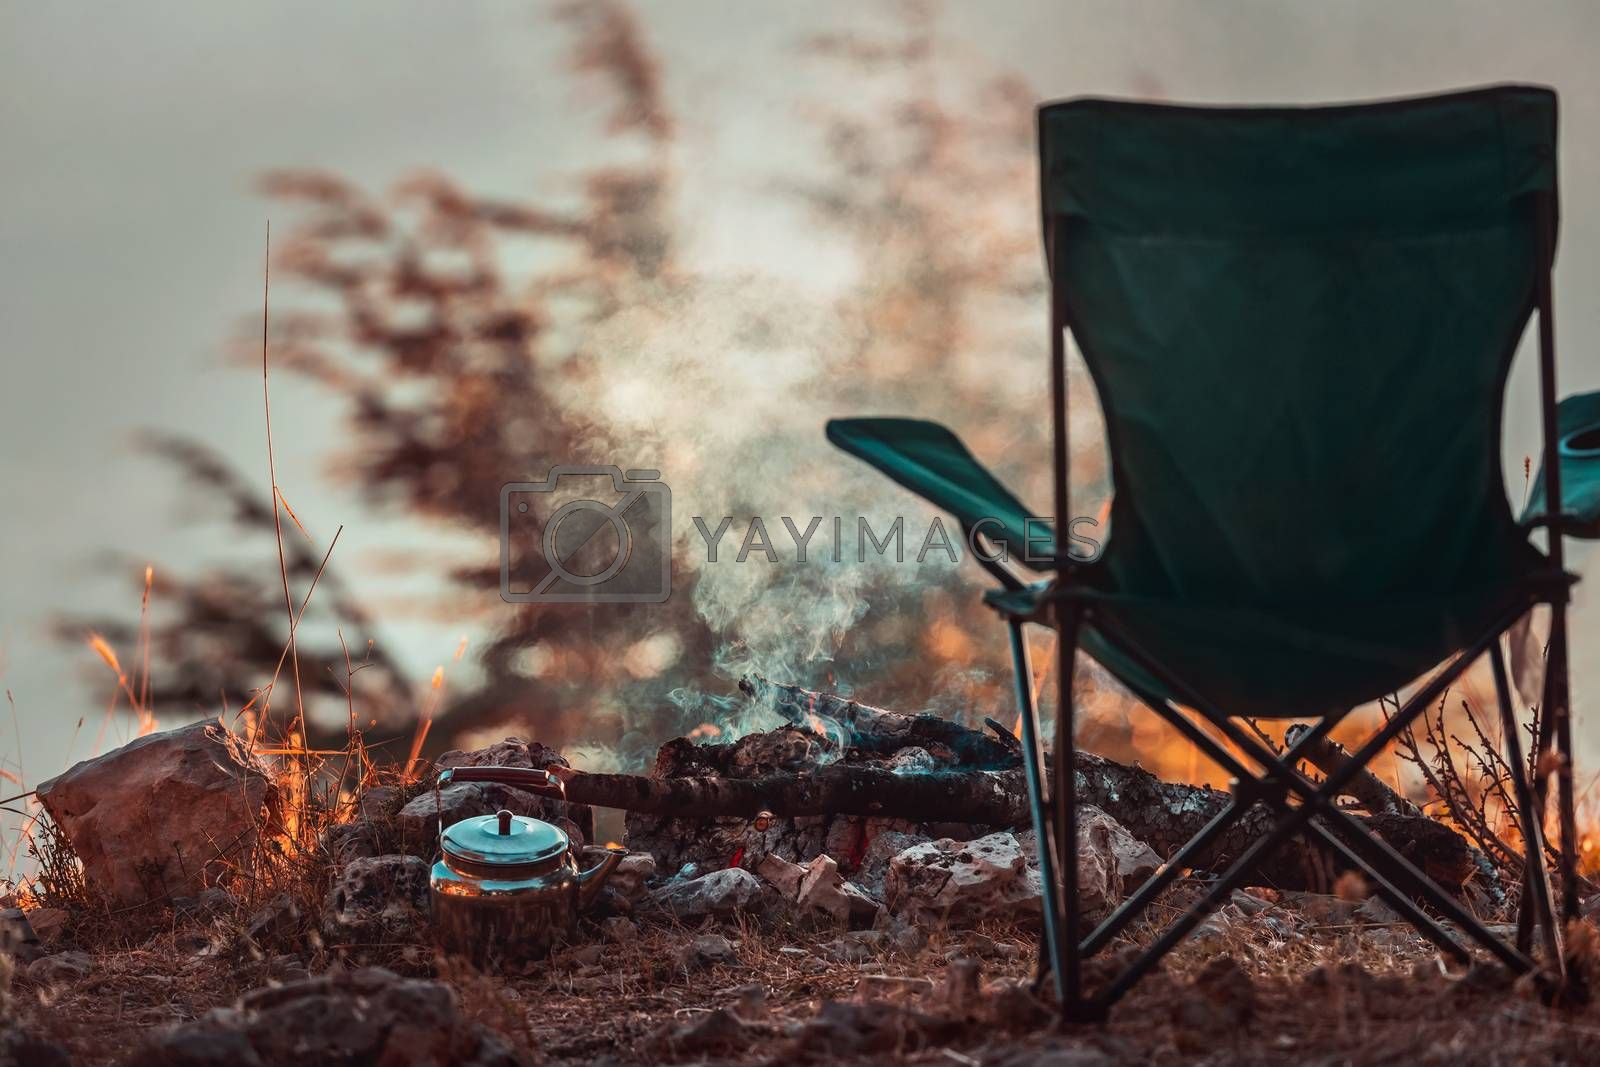 Conceptual Photo of an Autumnal Peaceful Recreation. Empty Camp Chair near Teapot in the Campfire. No People. Tranquility and Relaxation in the Nature.